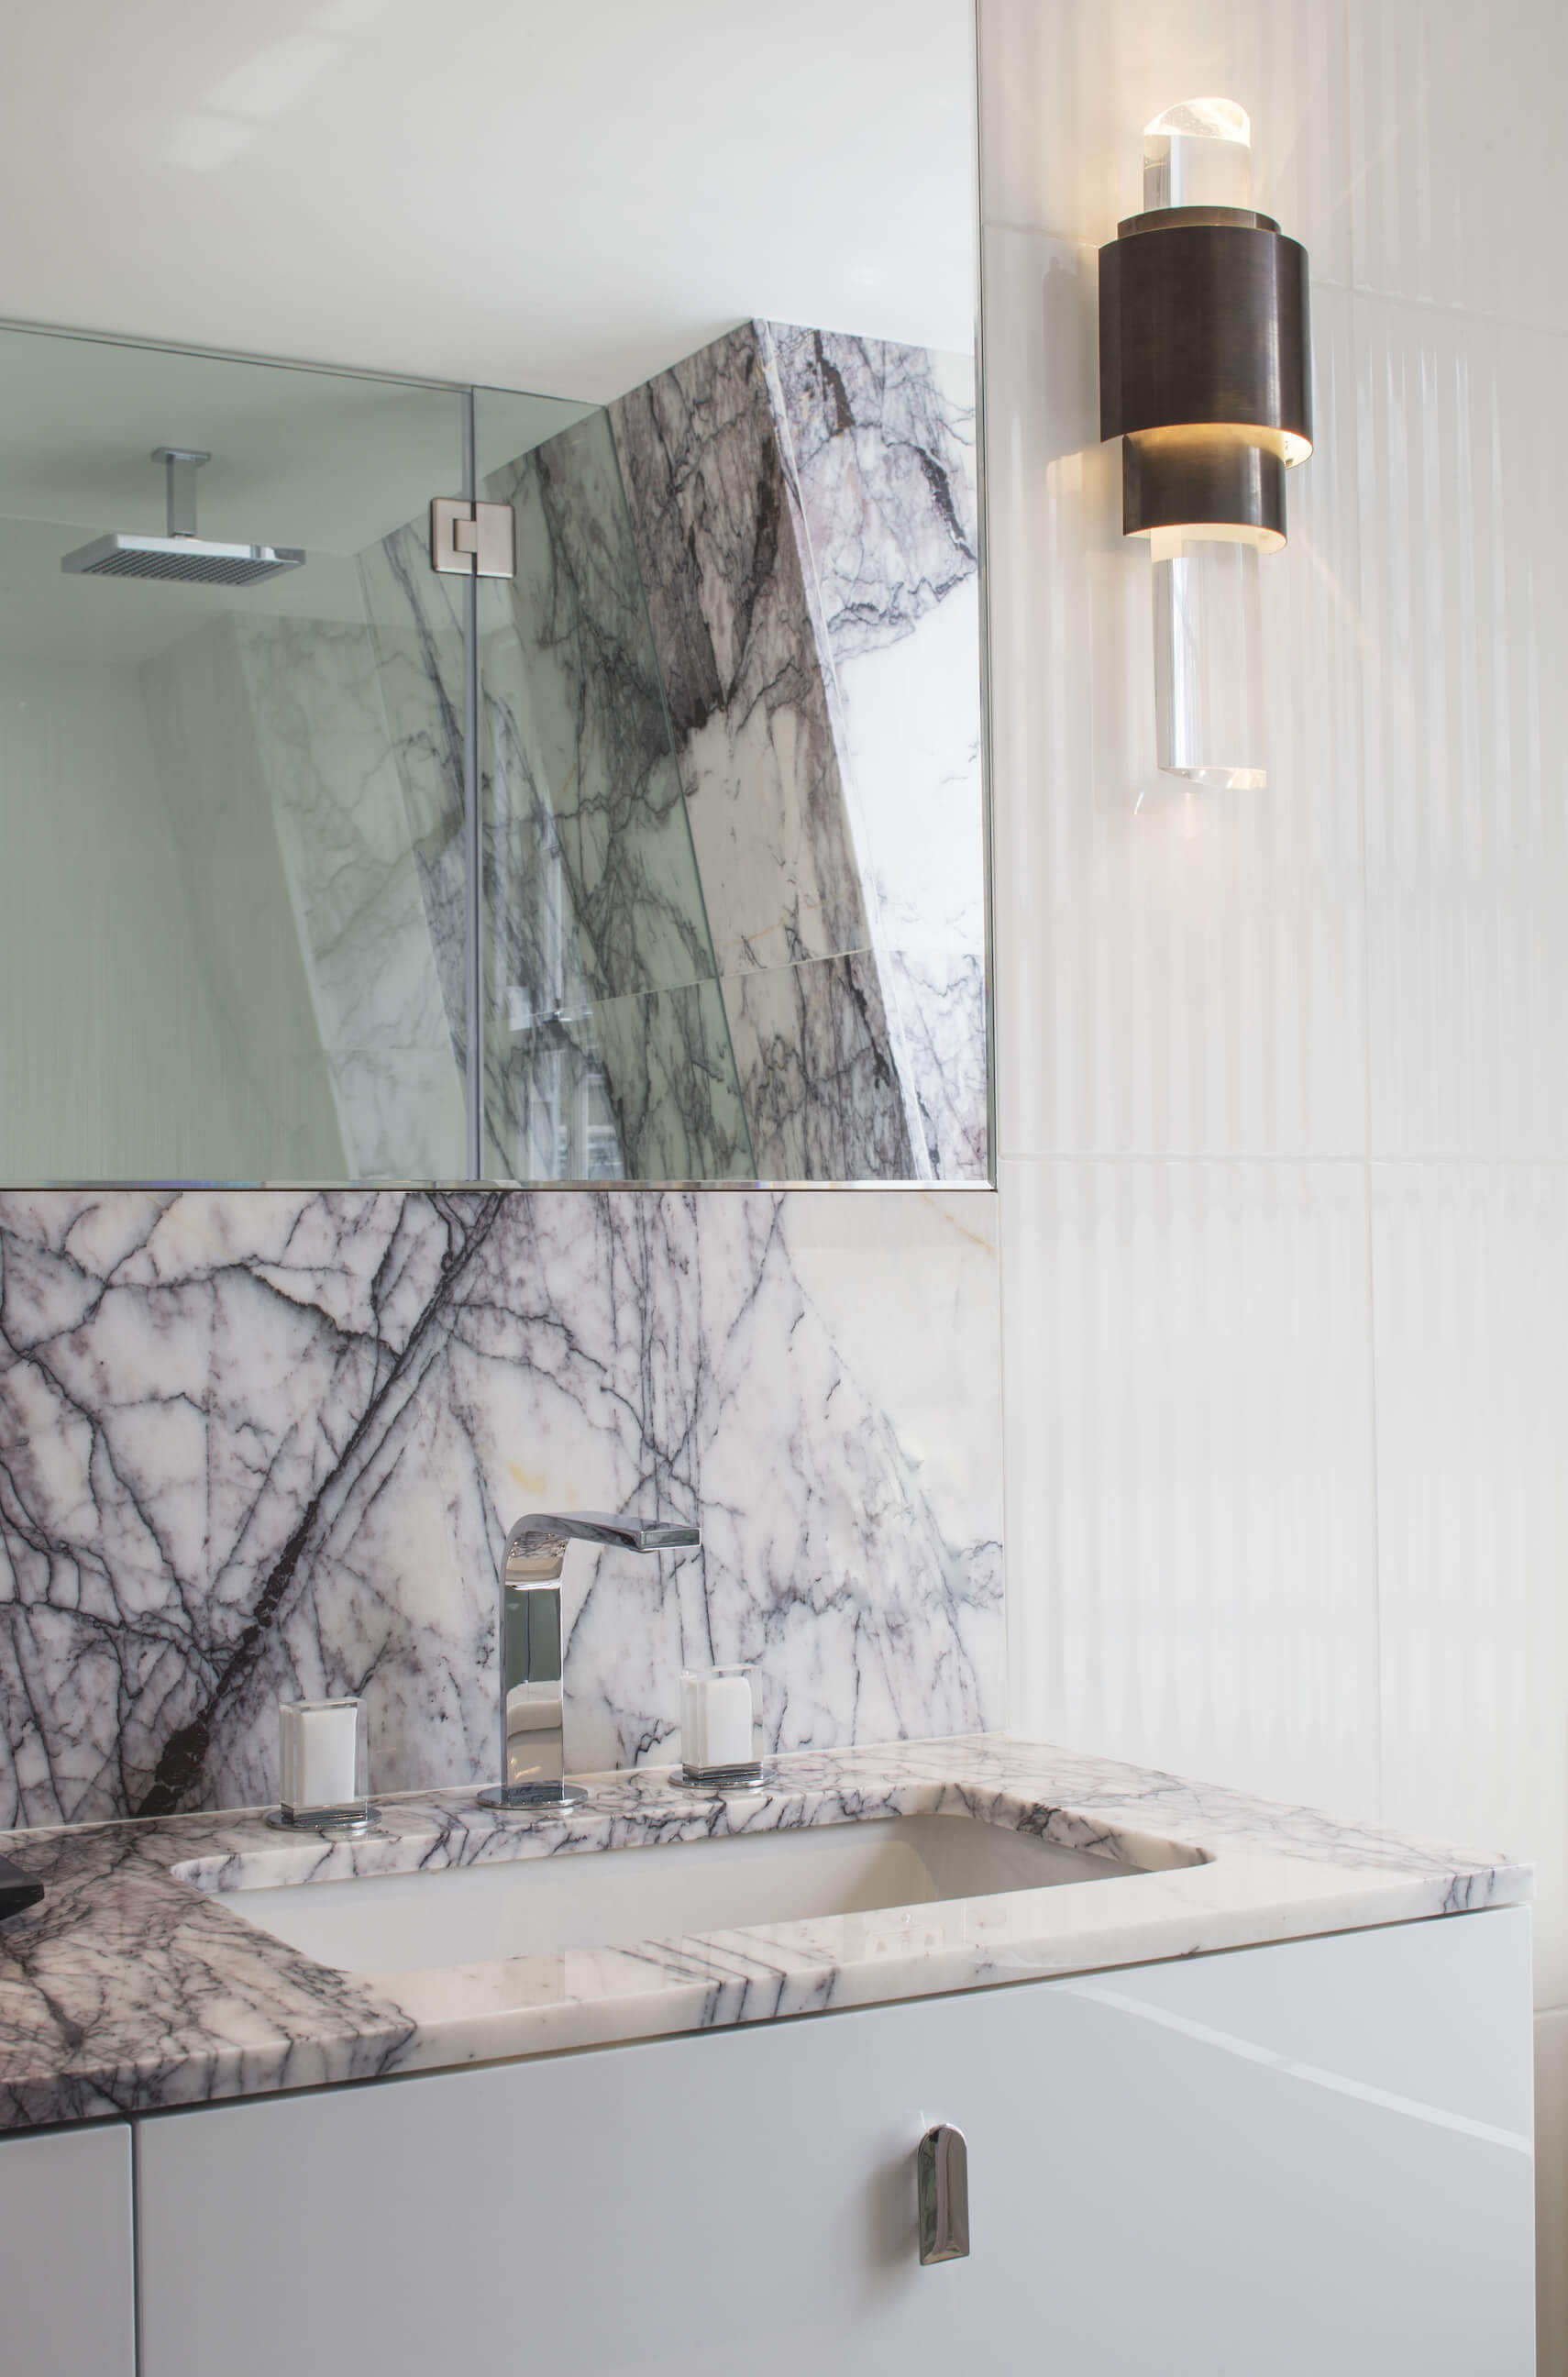 The vanity pops with detail, including this novel curved, flat faucet design with glass handles. The slanted wall embracing the glass shower can be seen in reflection.